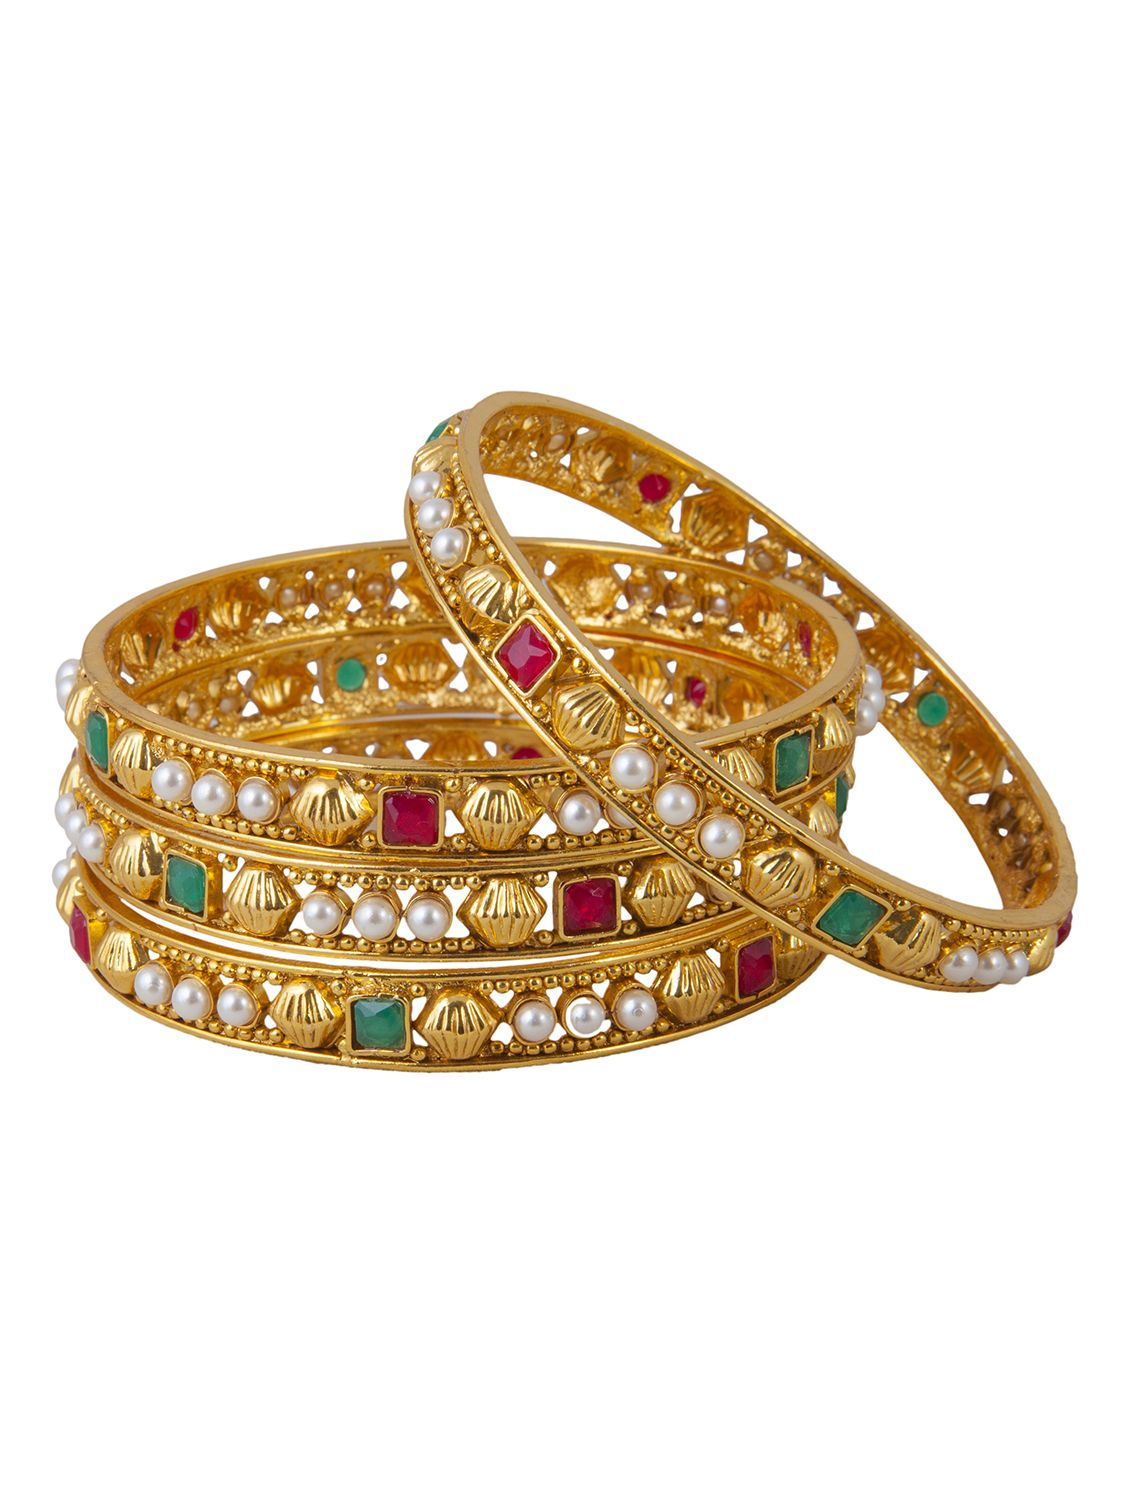 Buy Kada online, Latest Kada by Inaya   latest Bracelets and Bangles Shopping online at http://www.craftsvilla.com/catalog/product/view/id/3848682/s/kada only at 669